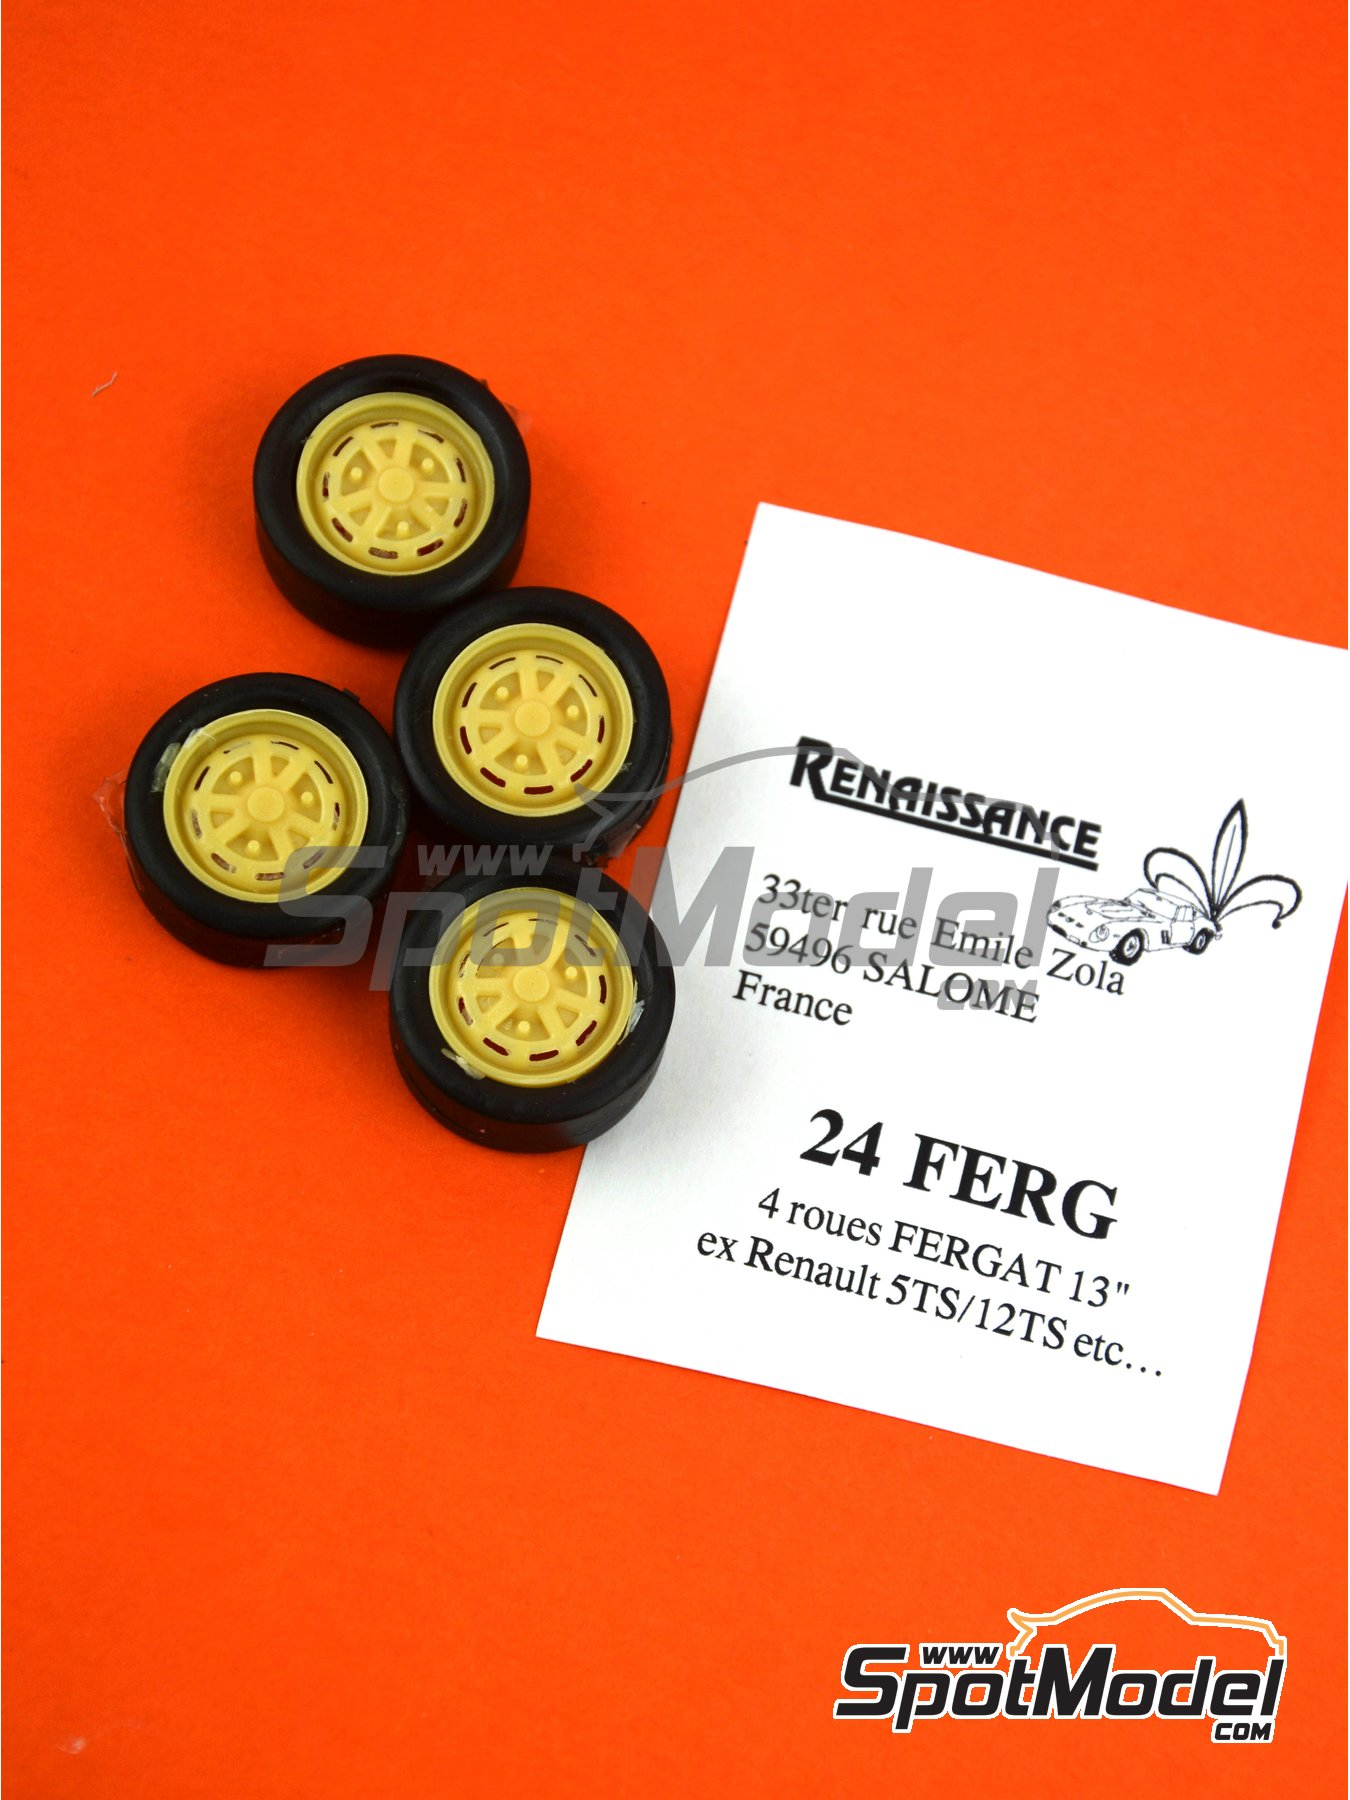 Renault R5 R12 Fergat 13 inches | Rims and tyres set in 1/24 scale manufactured by Renaissance Models (ref. 24FERG) image